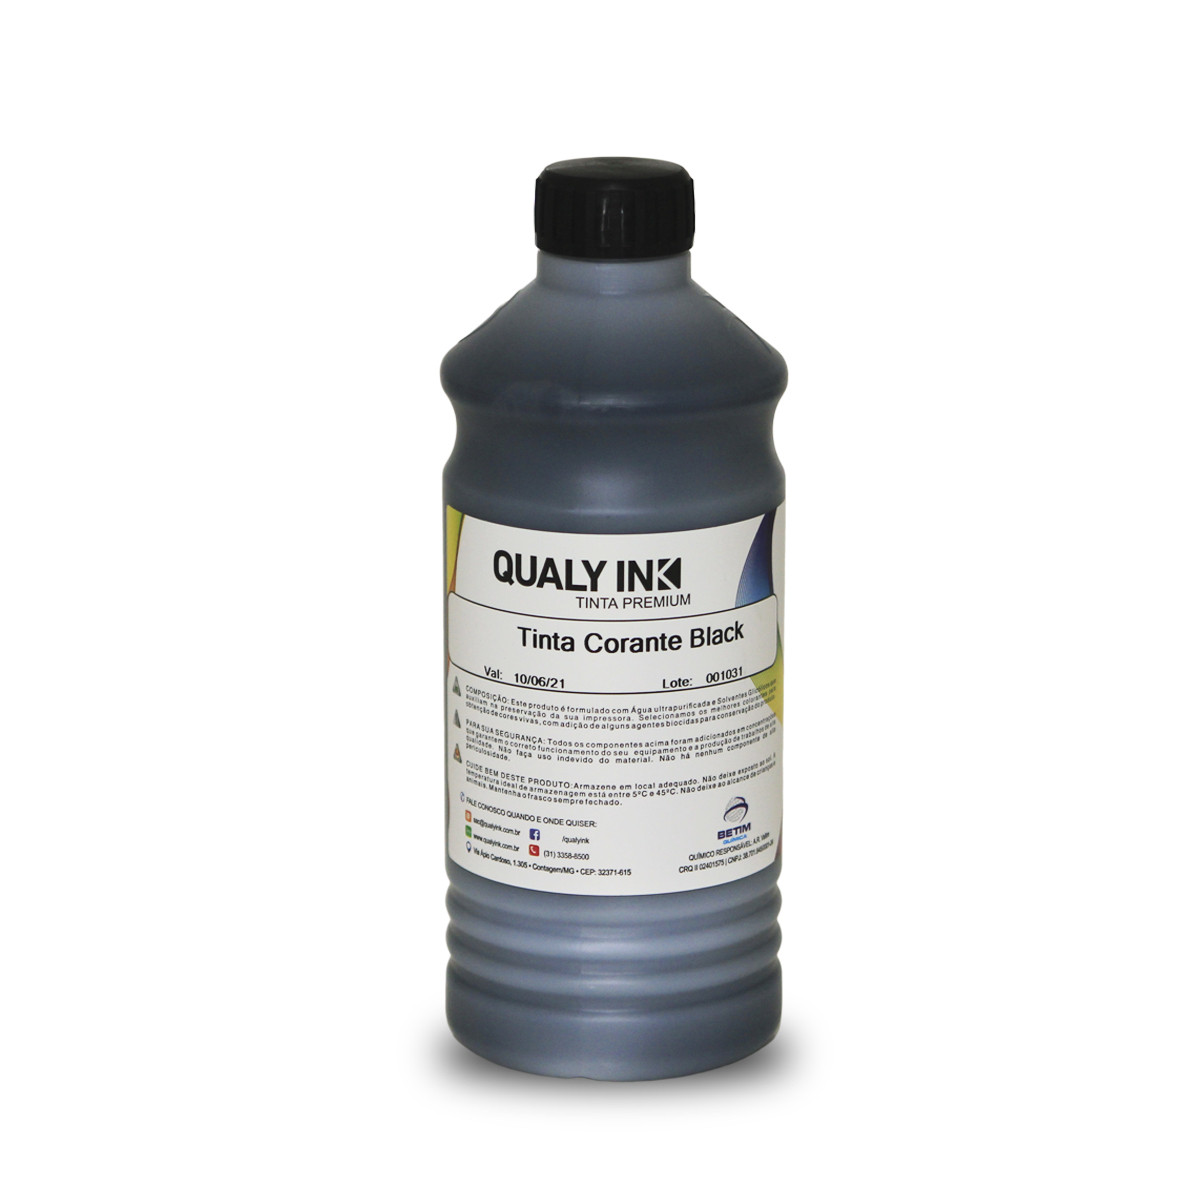 Tinta Brother BT-6001BK Preto Corante BC2B-1171 | DCP-T300 DCP-T500W DCP-T700W | Qualy Ink 1kg